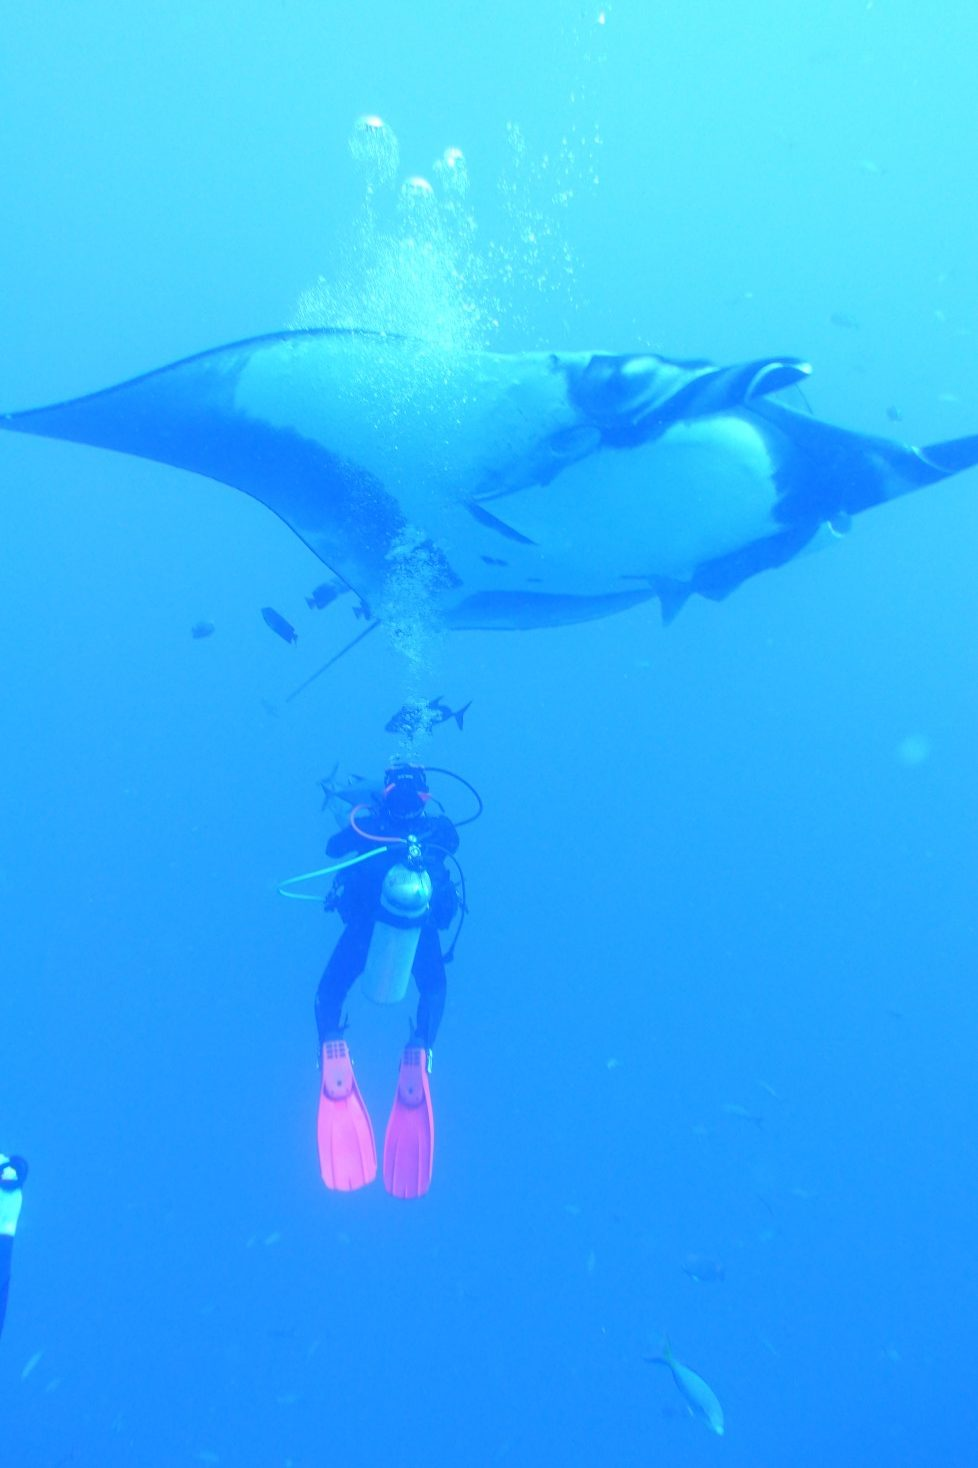 giant manta dwarfs diver observing from below